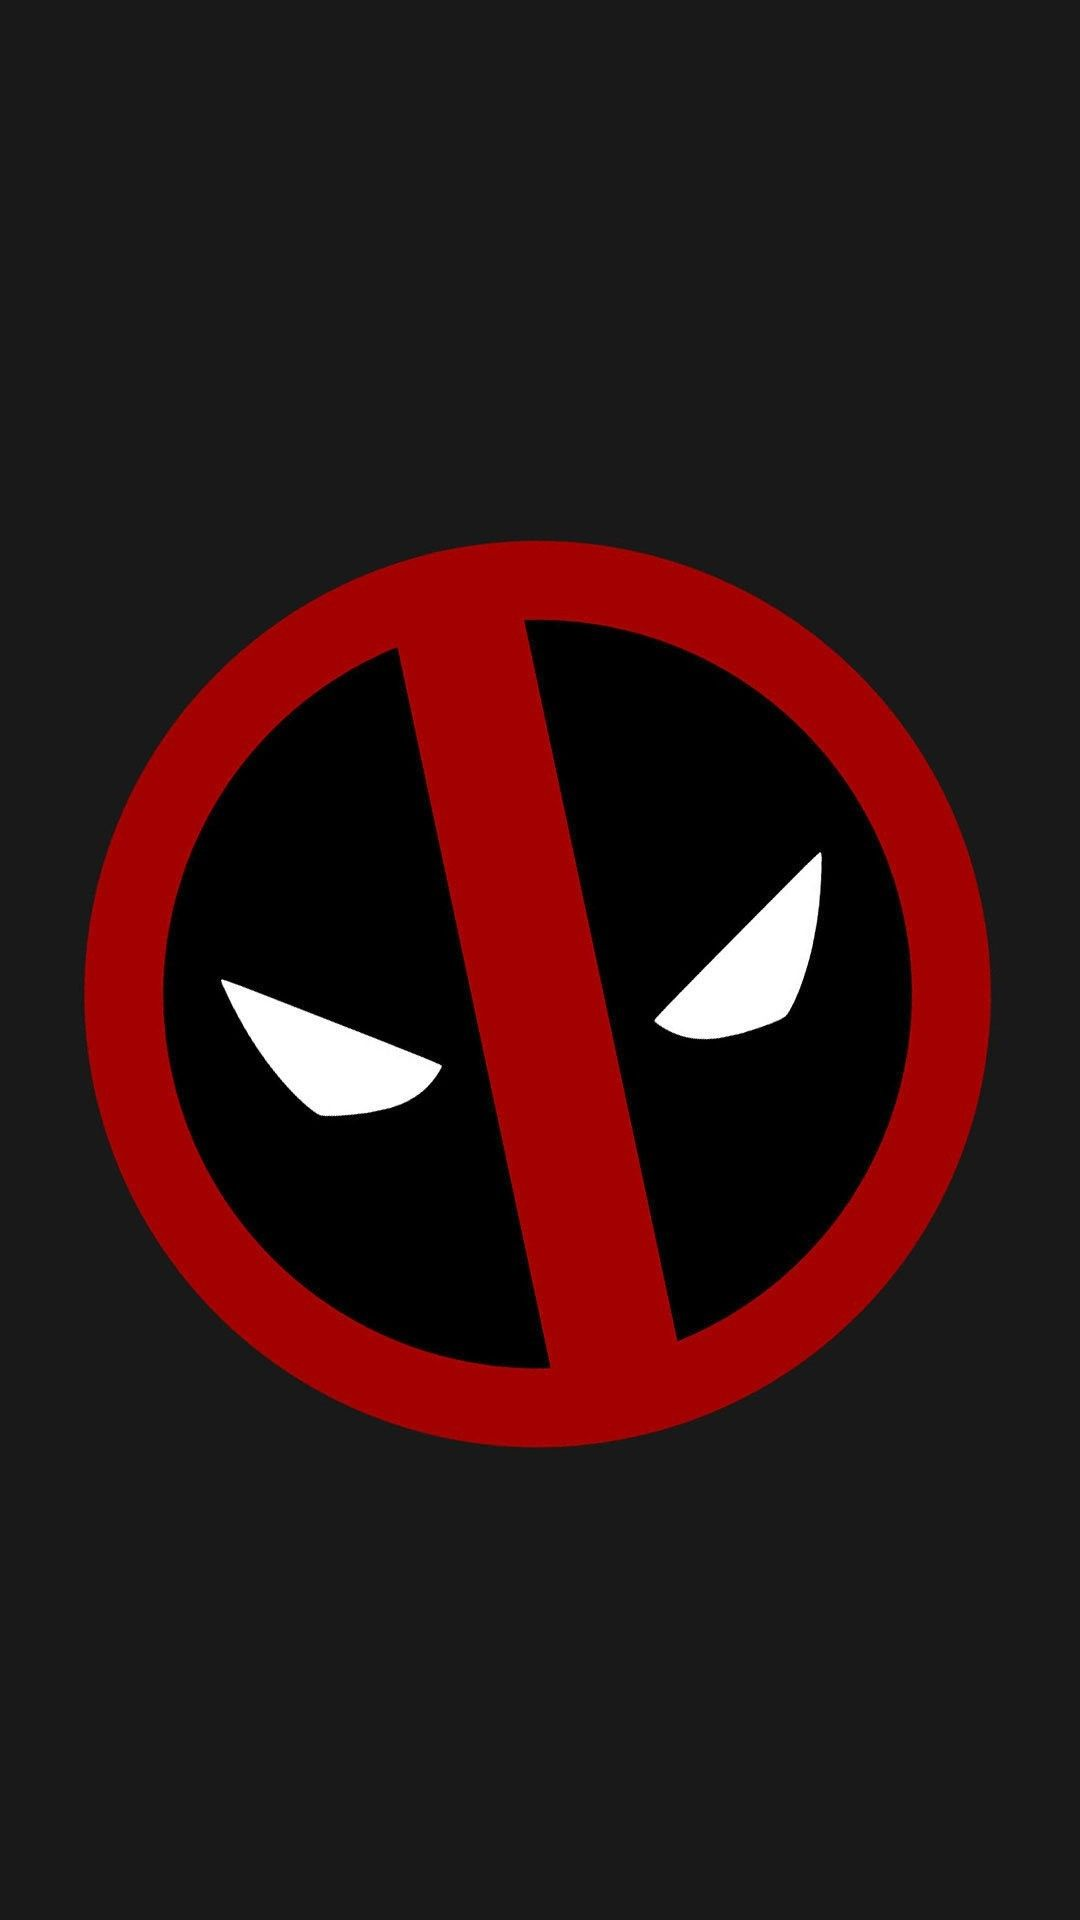 1080x1920 Deadpool HD Wallpapers for iPhone tures | HD Wallpapers | Pinterest ...